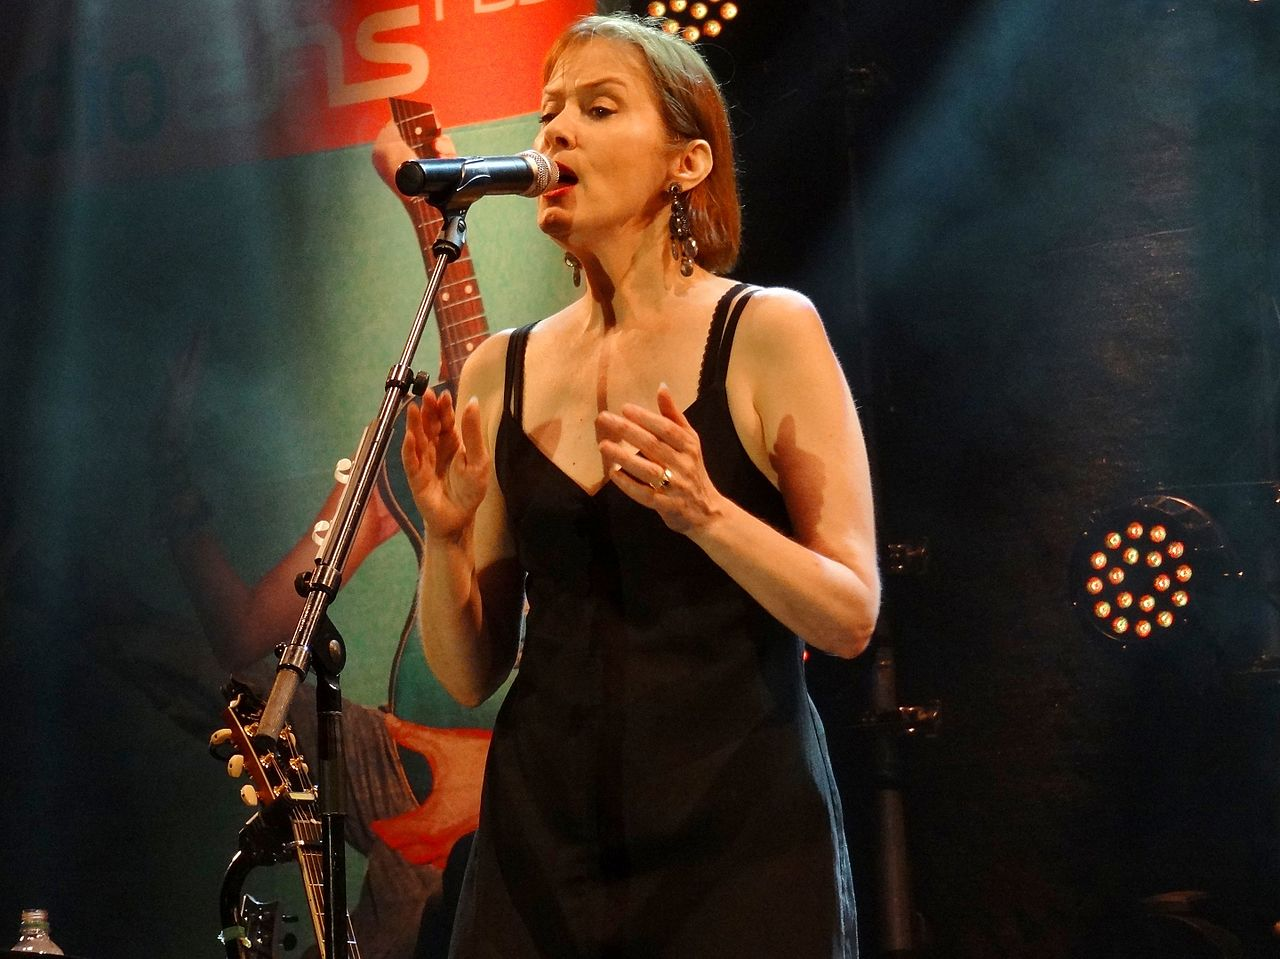 Suzanne Vega will play tonight at Krakow's ICE center